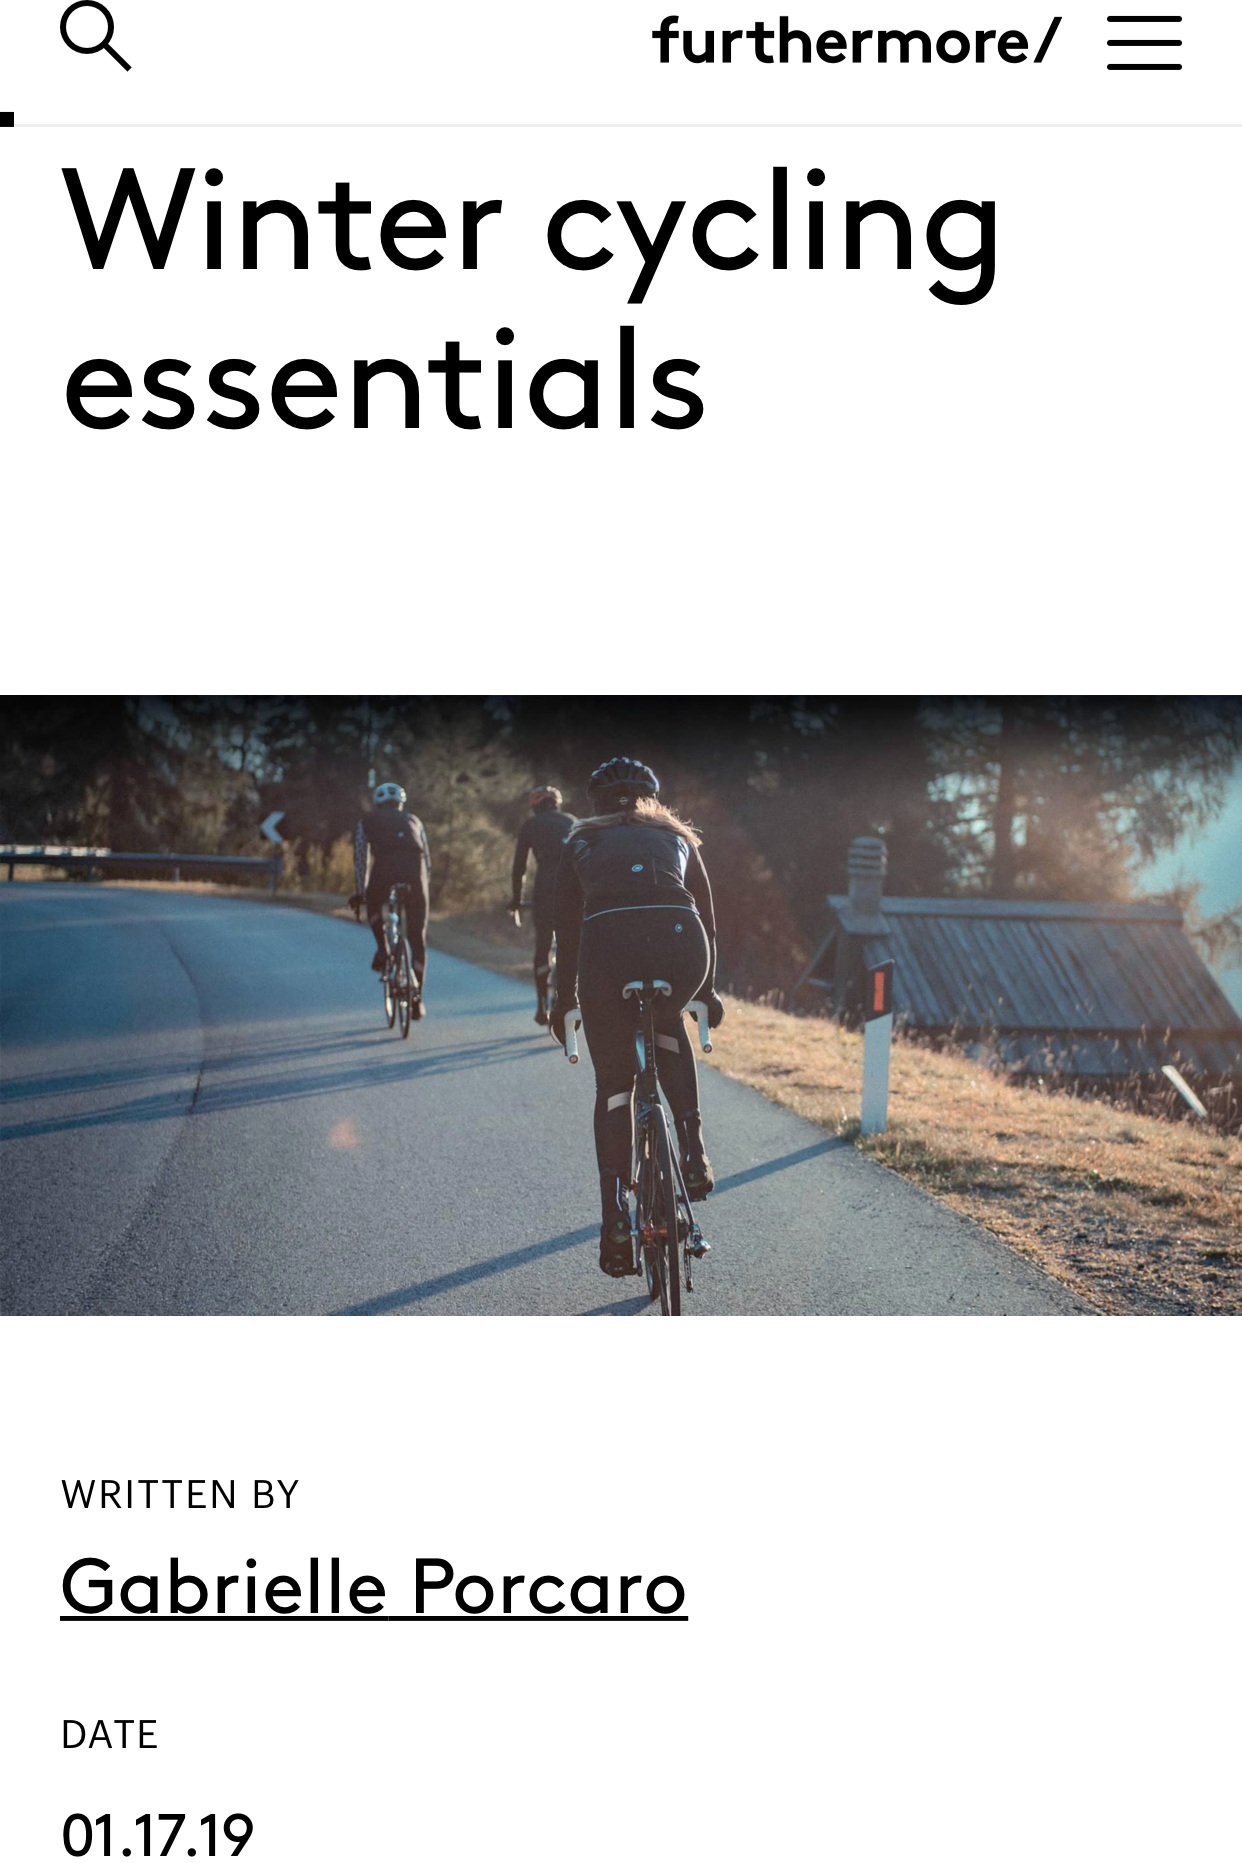 Furthermore: Winter Cycling Essentials - January 17, 2019